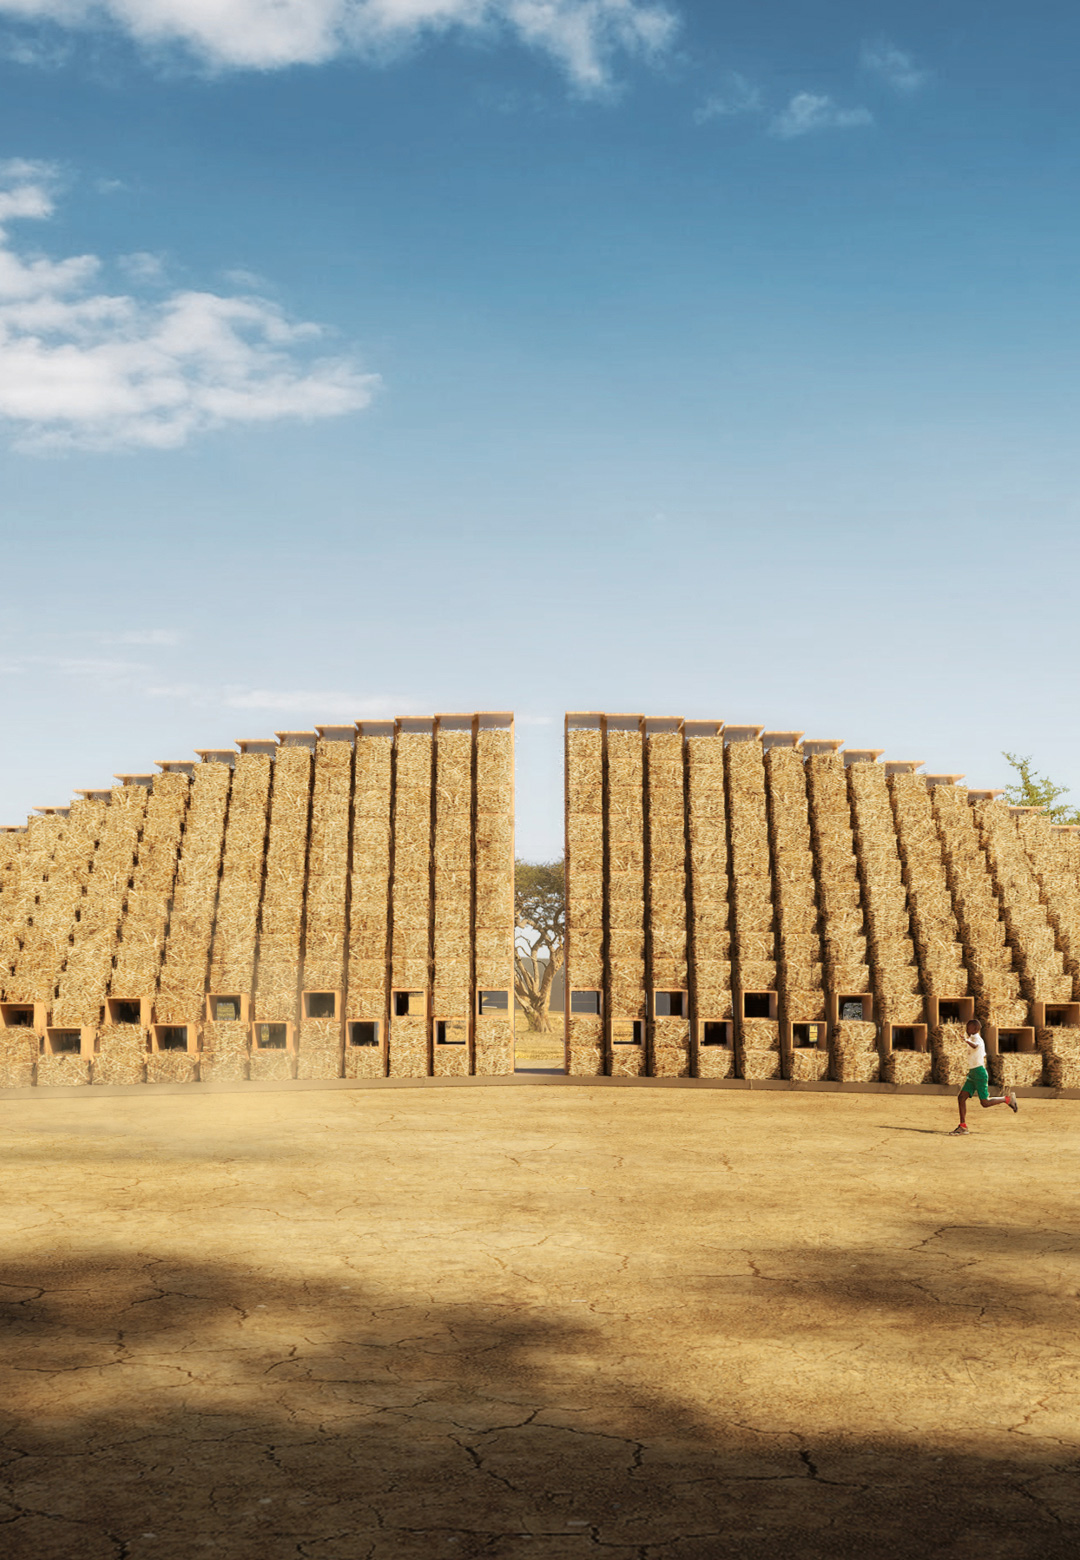 Design proposed for Straw Bale School, Malawi, East Africa| Straw Bale School| Nudes| STIR